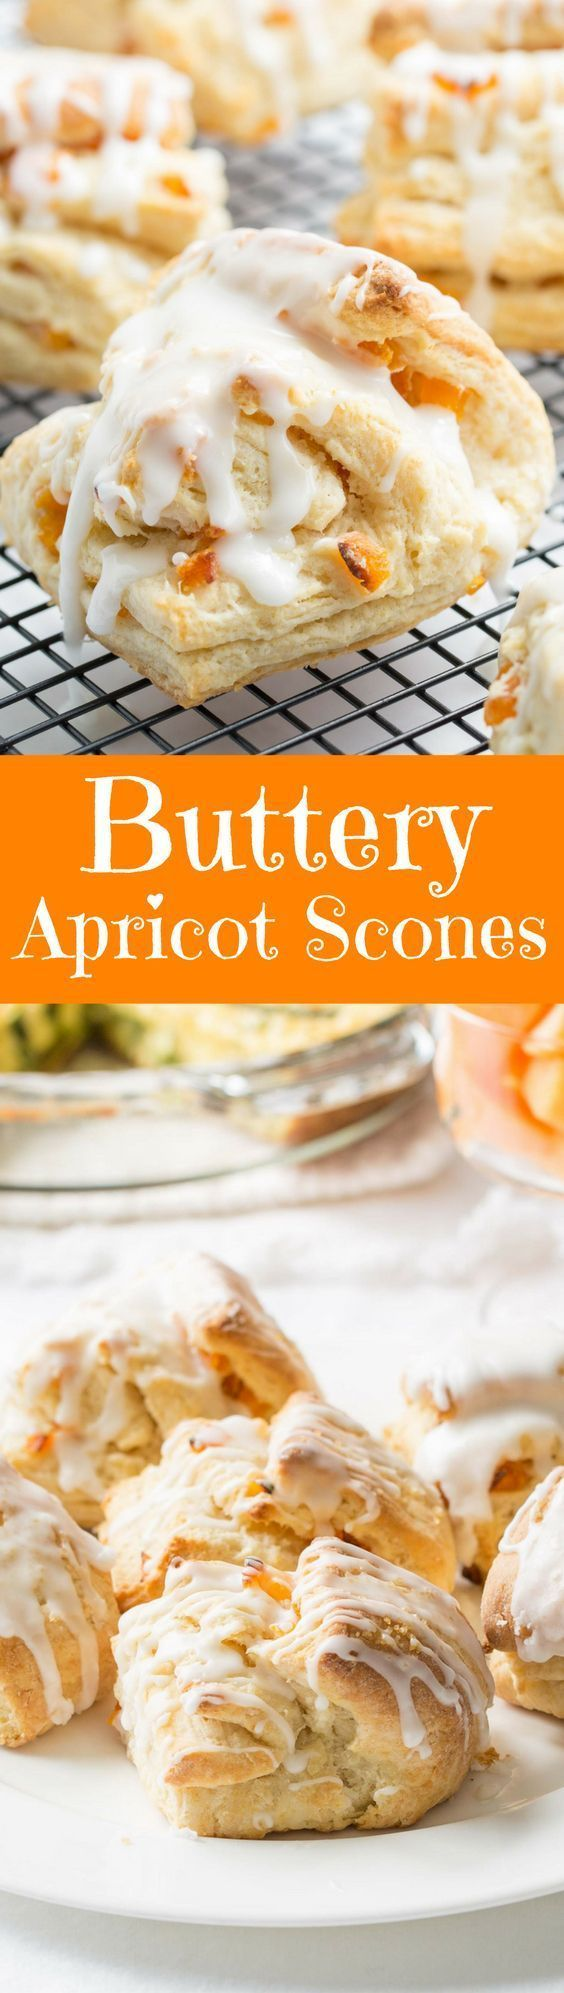 Buttery Apricot Scones ~ A light, flaky, buttery scone layered with chopped apricots and iced with an almond flavored glaze. http://www.savingdessert.com